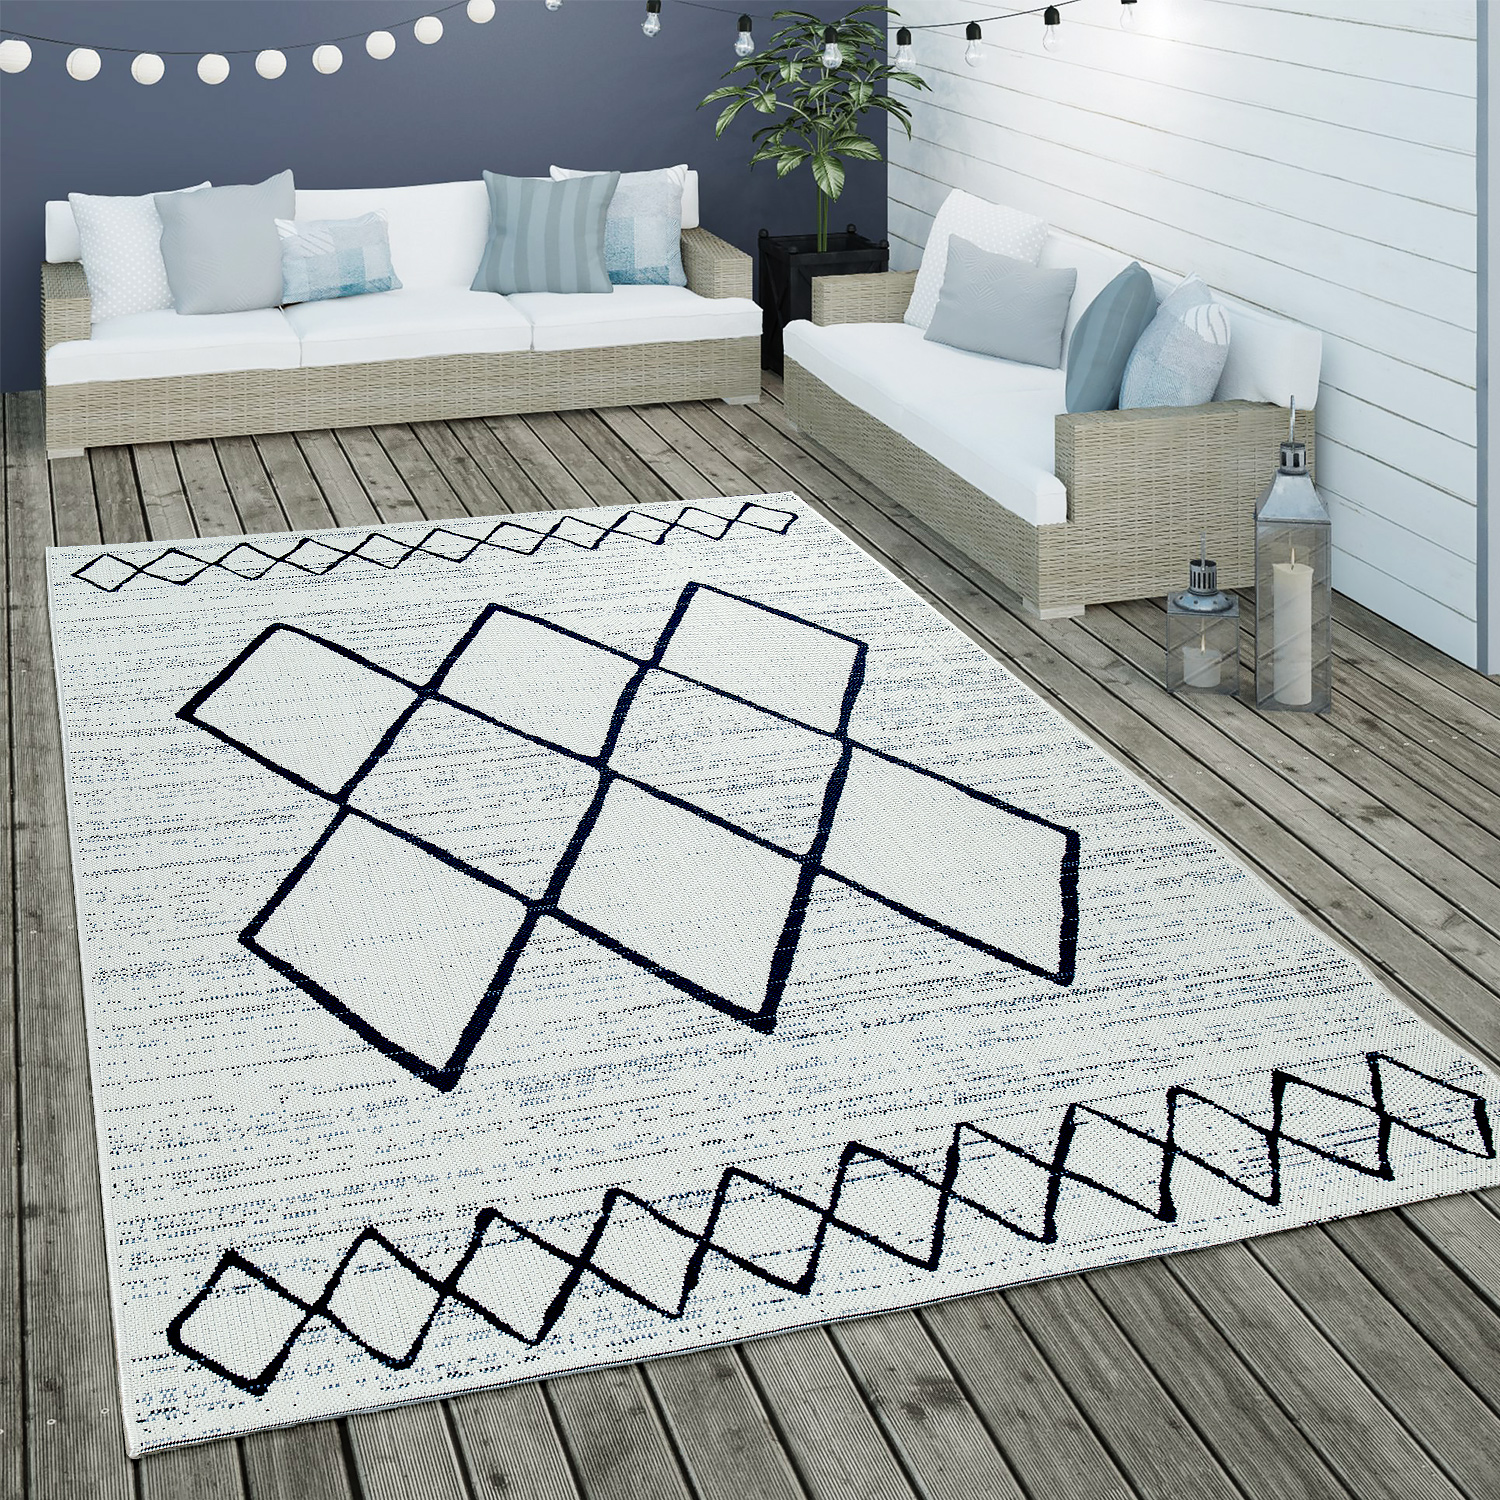 Indoor & Outdoor Flat-Weave Rug Geometric Scandinavian Motif In White Blue